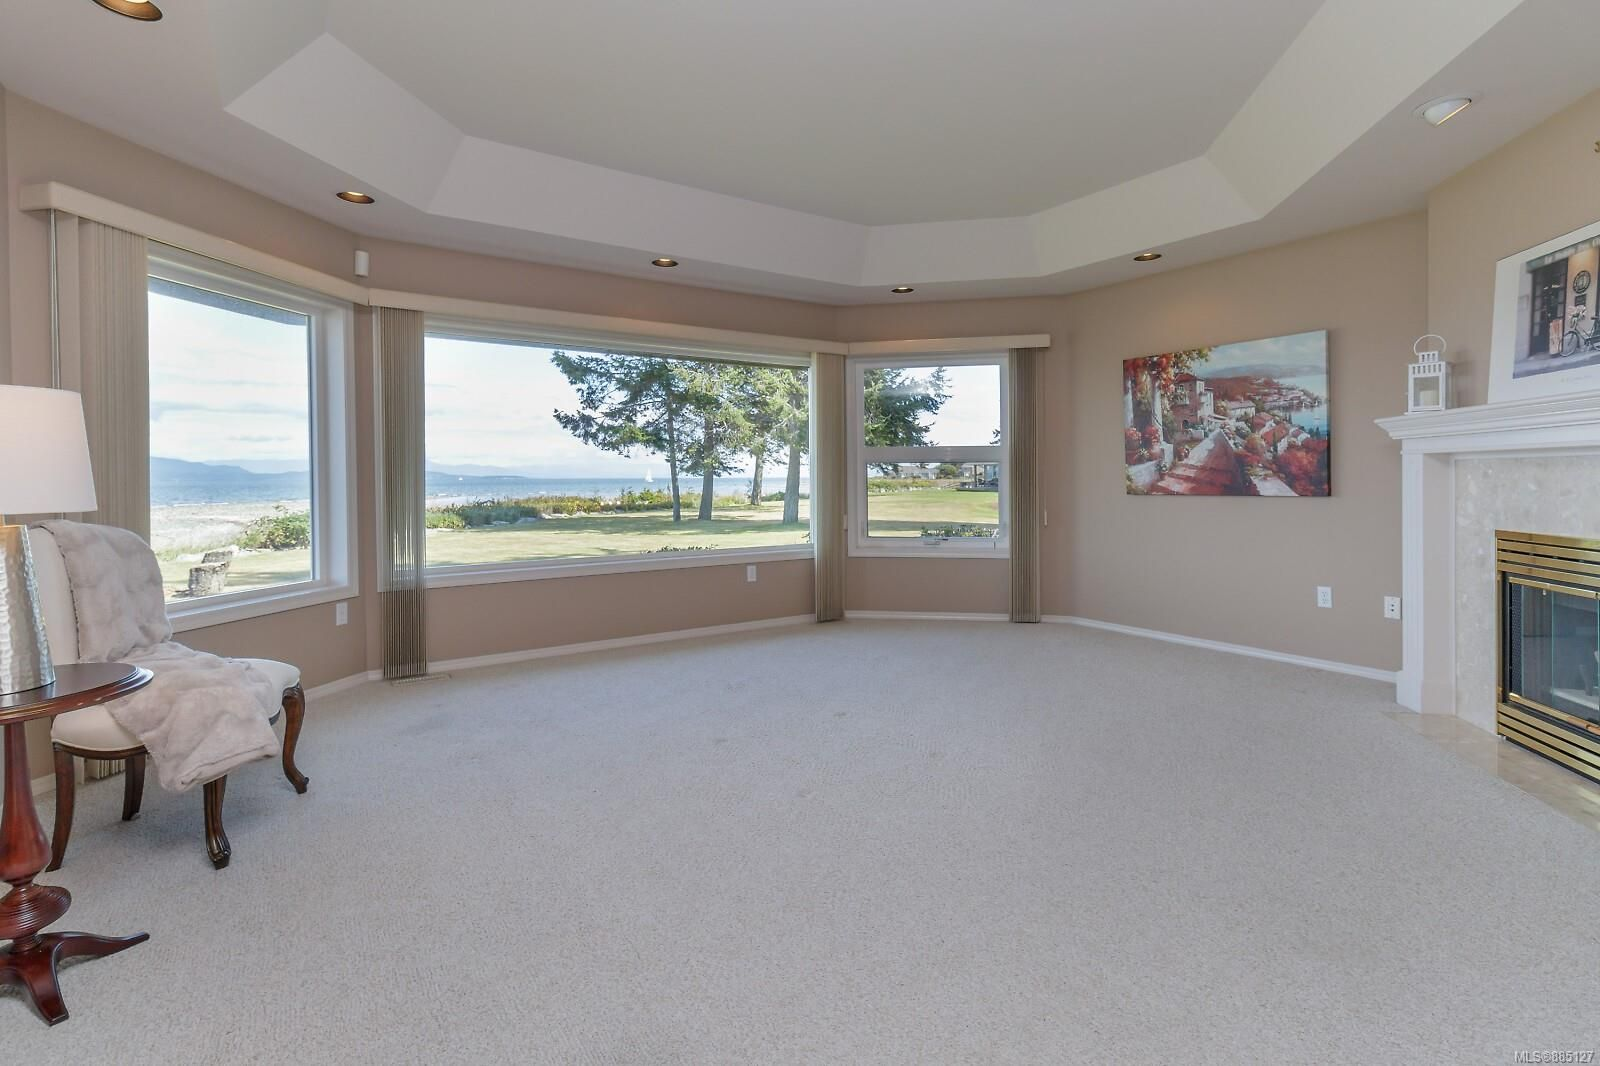 Photo 8: Photos: 26 529 Johnstone Rd in : PQ French Creek Row/Townhouse for sale (Parksville/Qualicum)  : MLS®# 885127